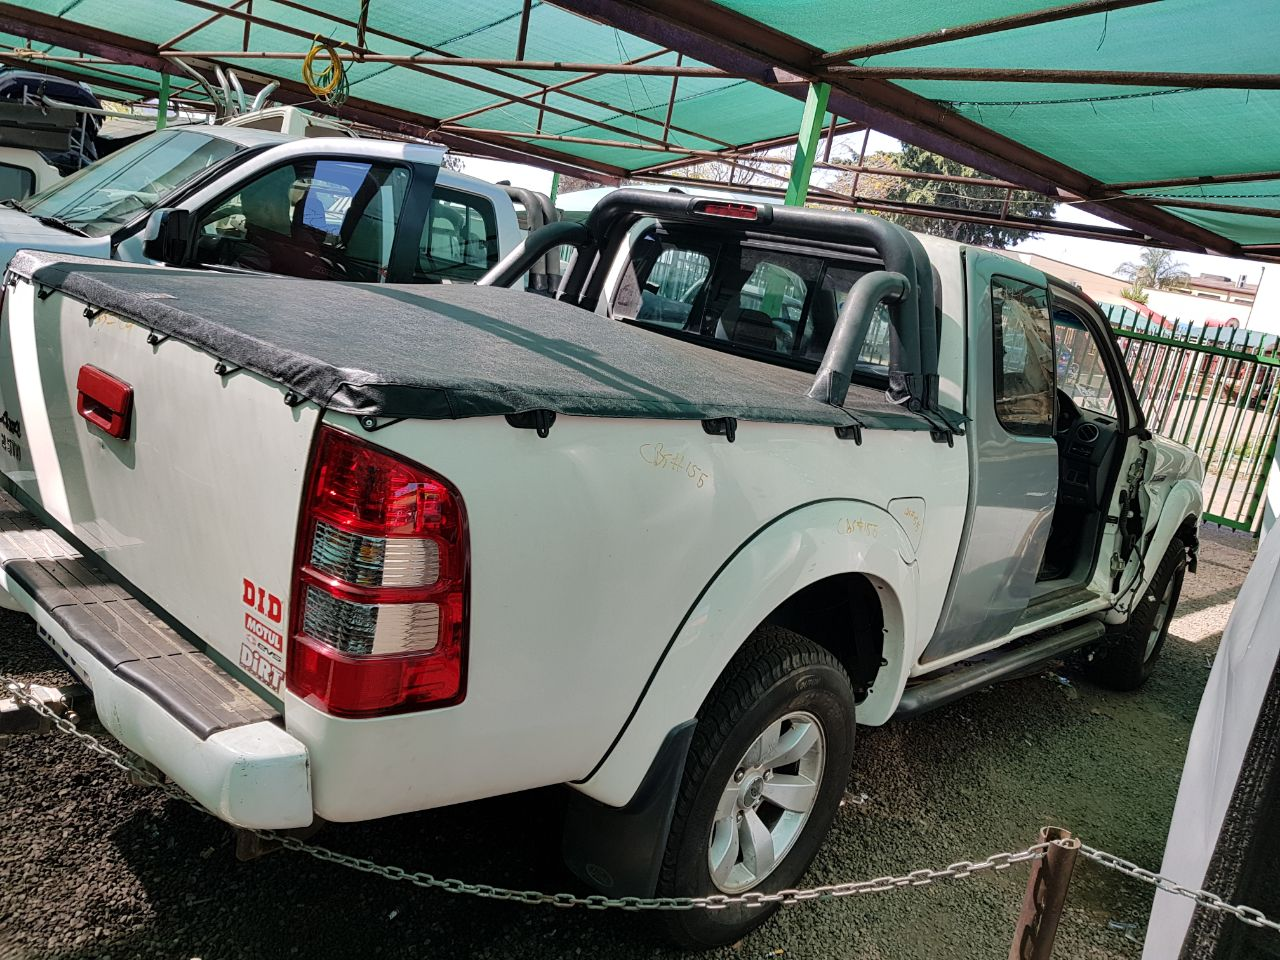 Ford Ranger 3.0L TDCI 4x4 2008 model striping for spares